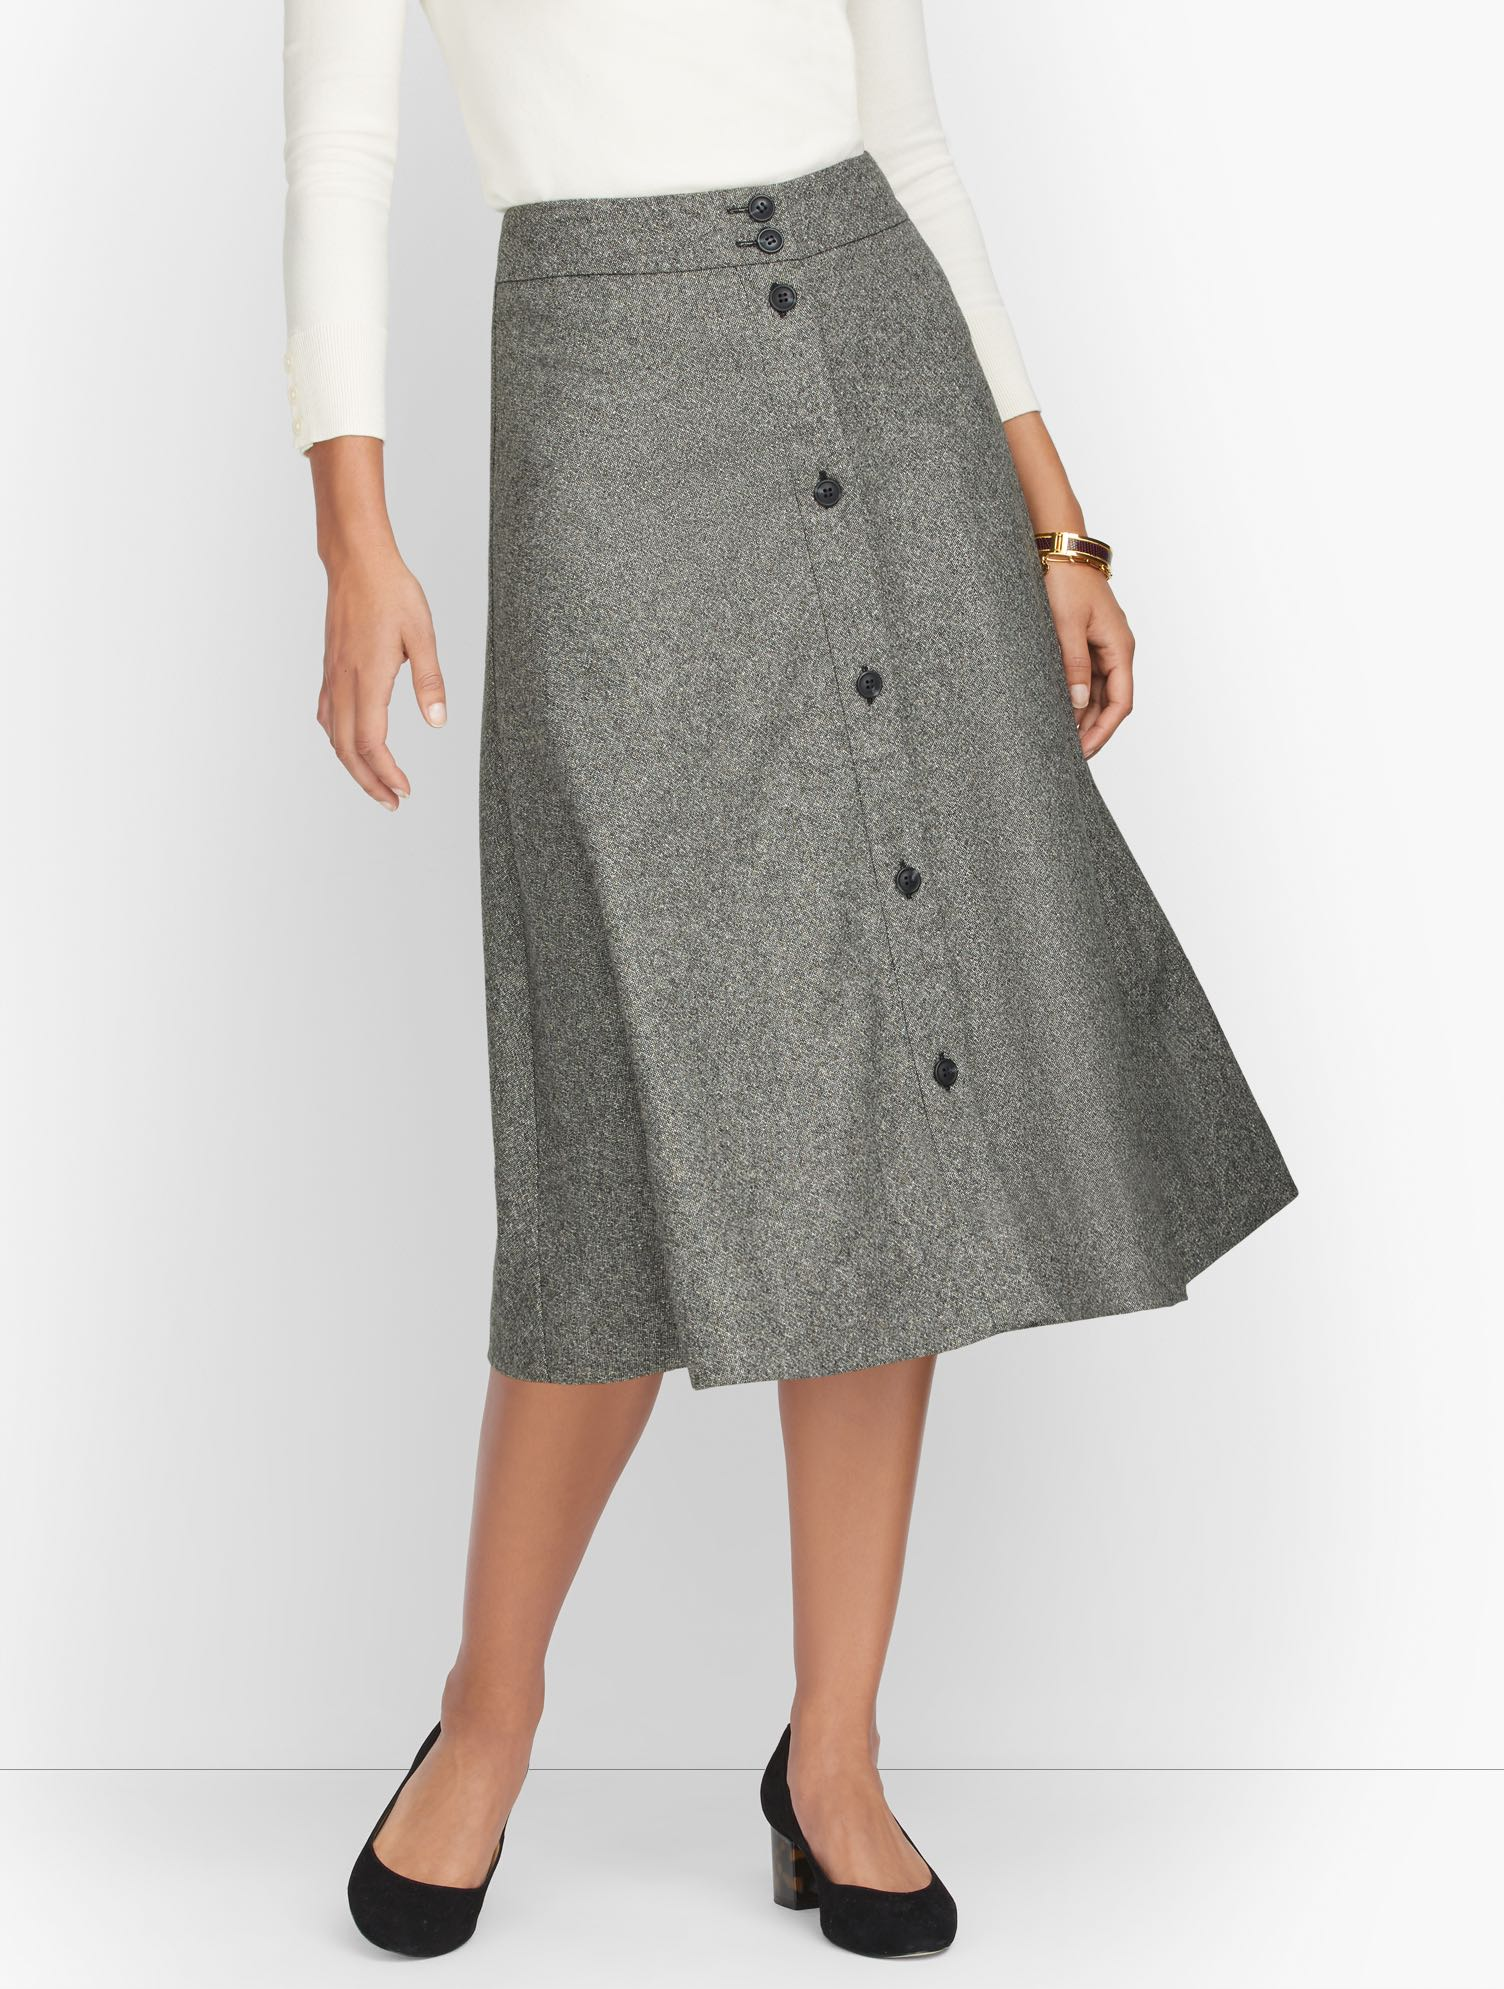 The button-front skirt. In a Donegal tweed. Renowned for multi-colored flecks that run through the weave. Twirl worthy. Features Silhouette: FullHits: Below KneeClosure: Button frontLinedImported Fit: Misses: 29 inches; Petite: 26 inches Material: 31% Viscose, 31% Polyester, 28% Wool, 10% Other Fibers; Lining 100% Polyester Care: Dry Clean Donegal Button Front Full Skirt - Black/White Donegal - 16 Talbots